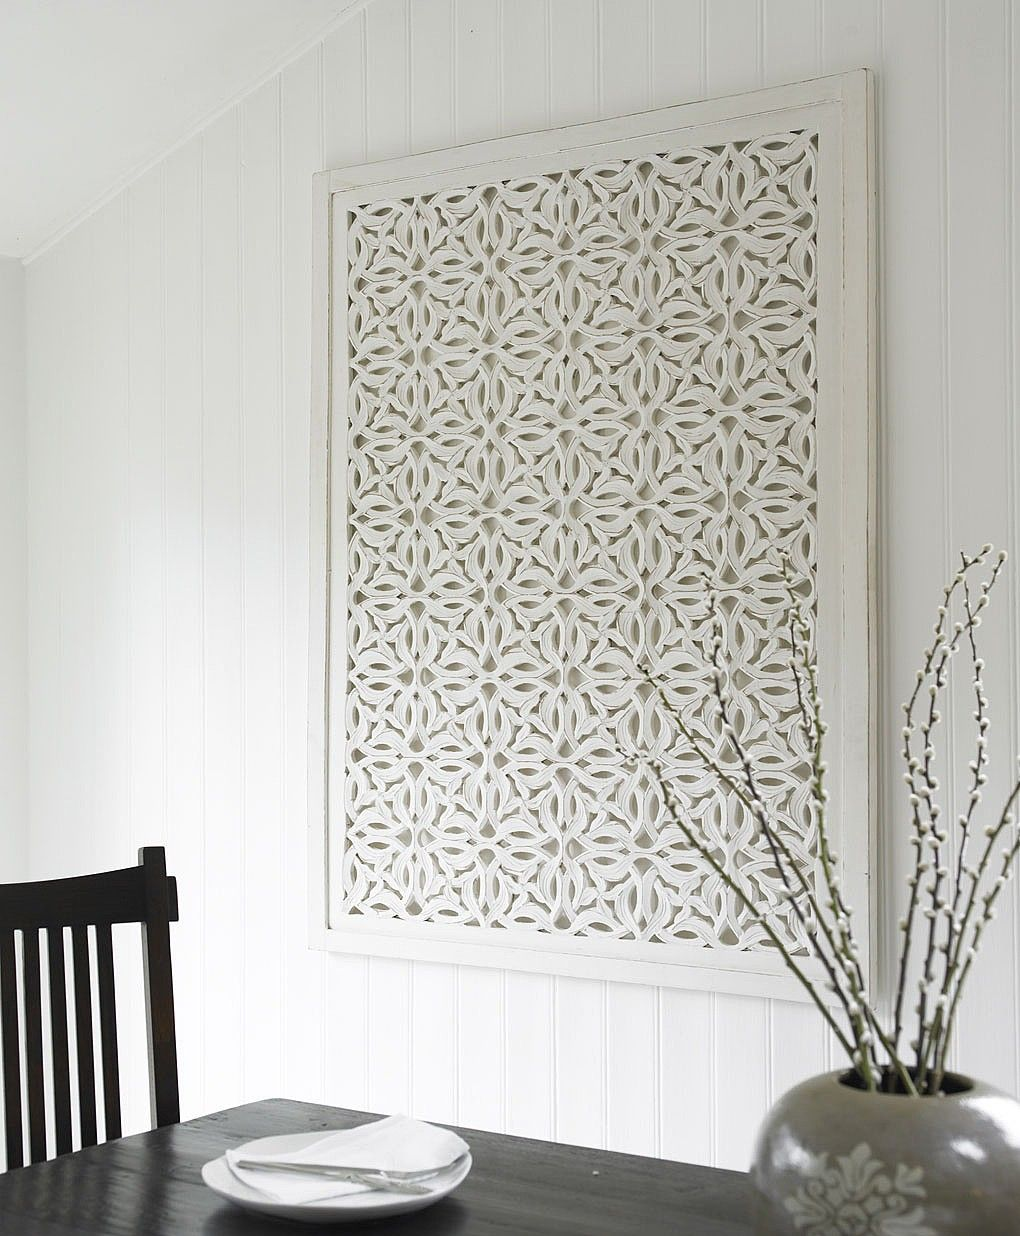 decorative wood wall panels - Decorative Wall Art